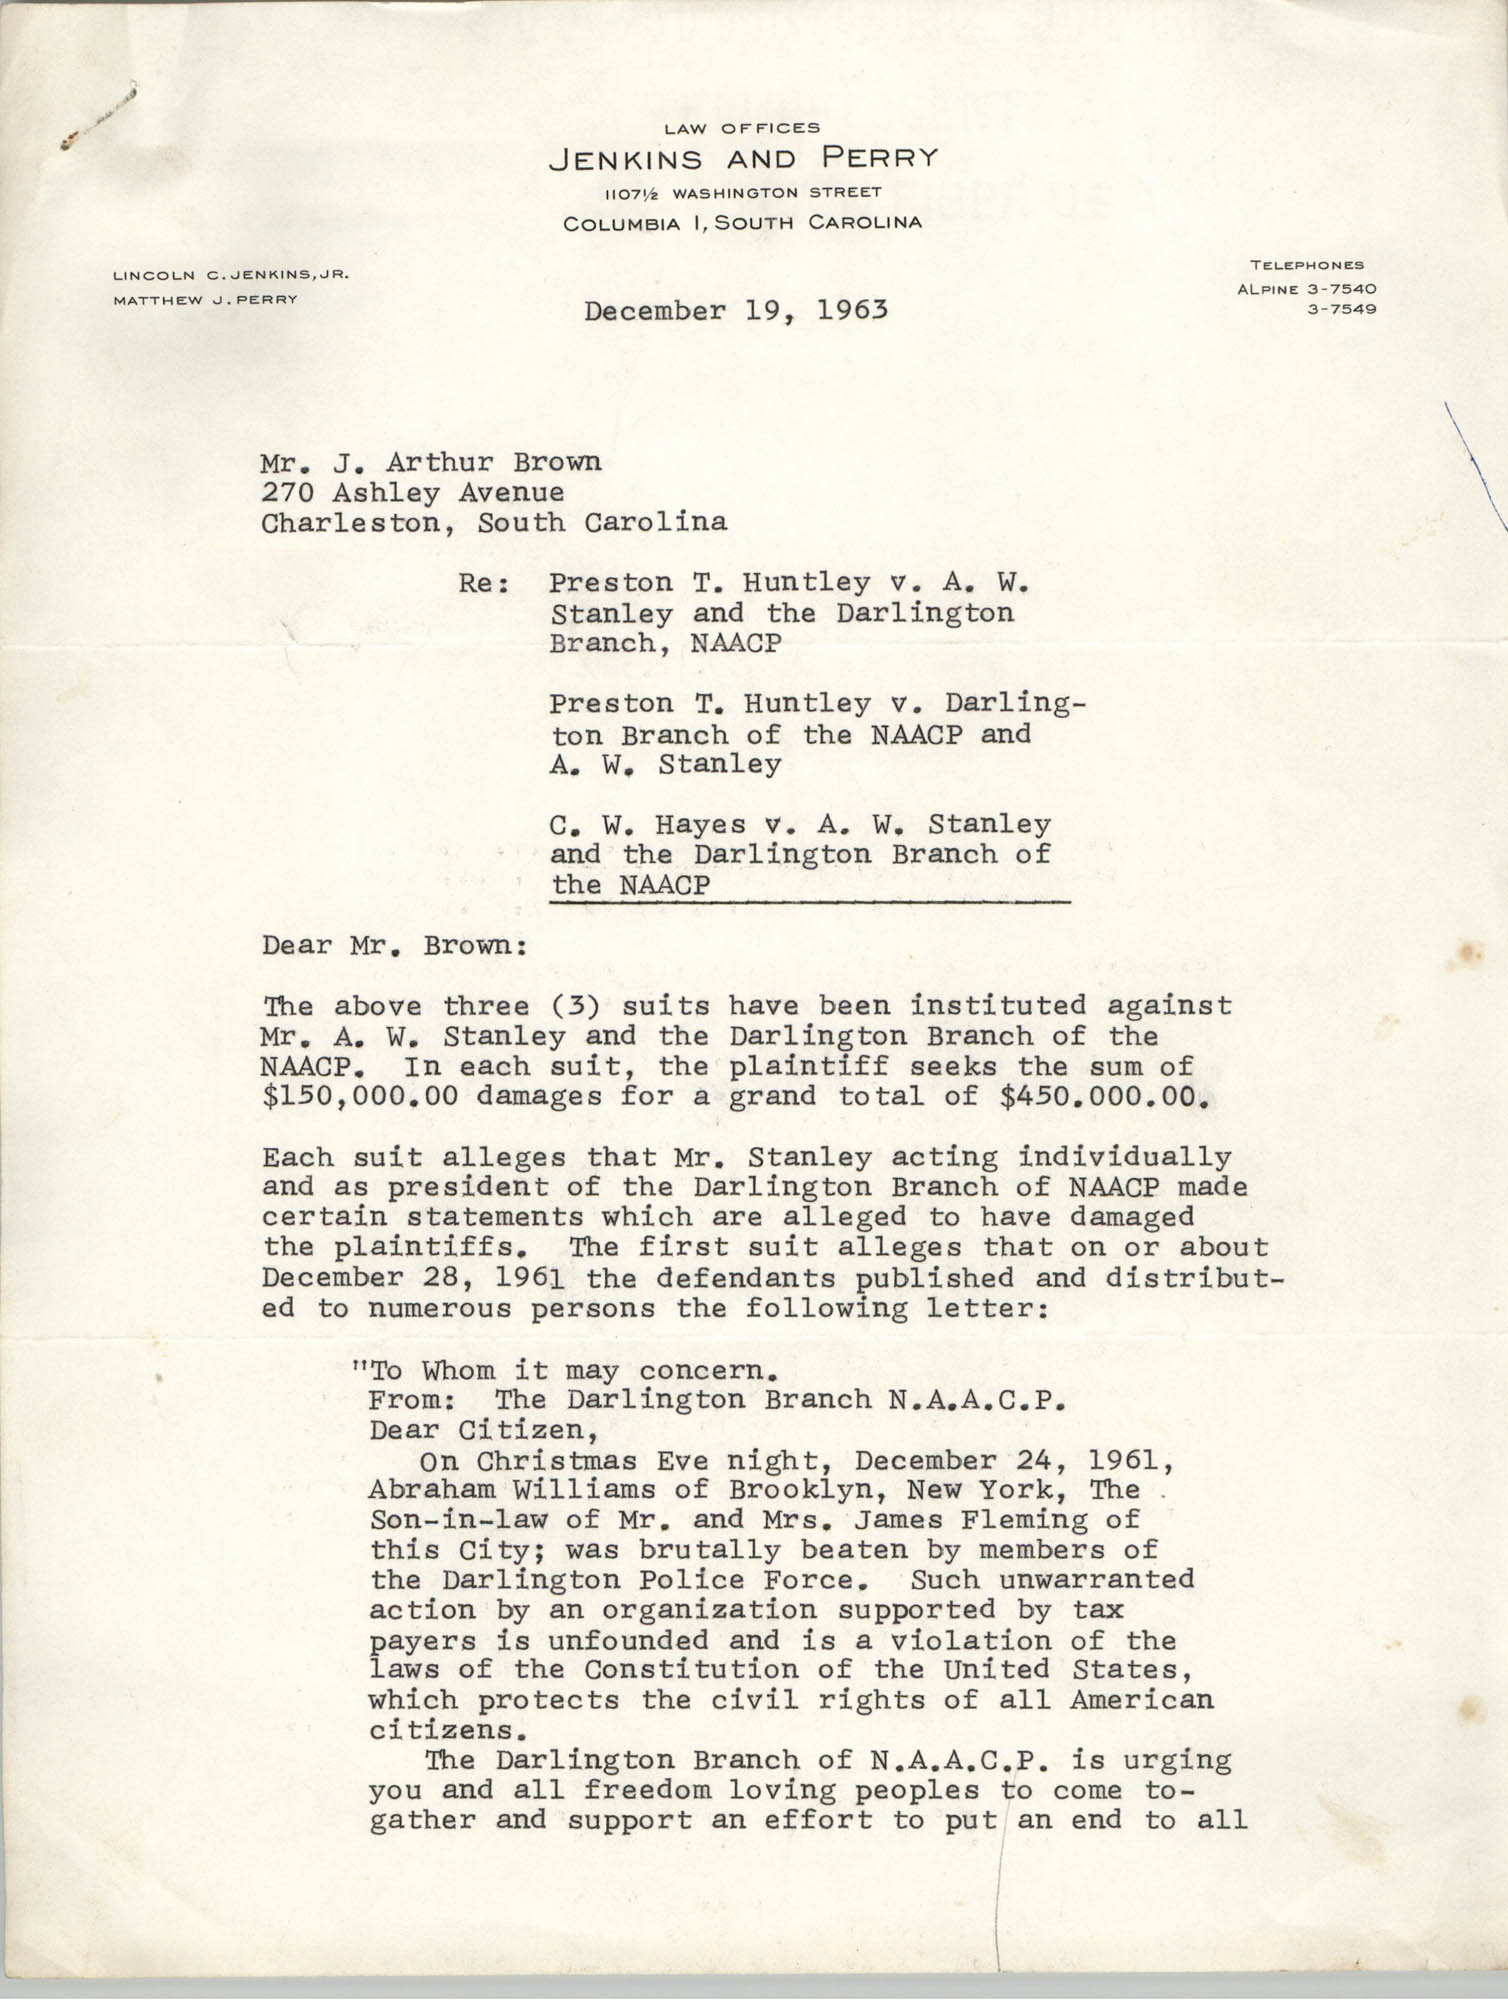 Letter from Matthew J. Perry to J. Arthur Brown, October 19, 1963